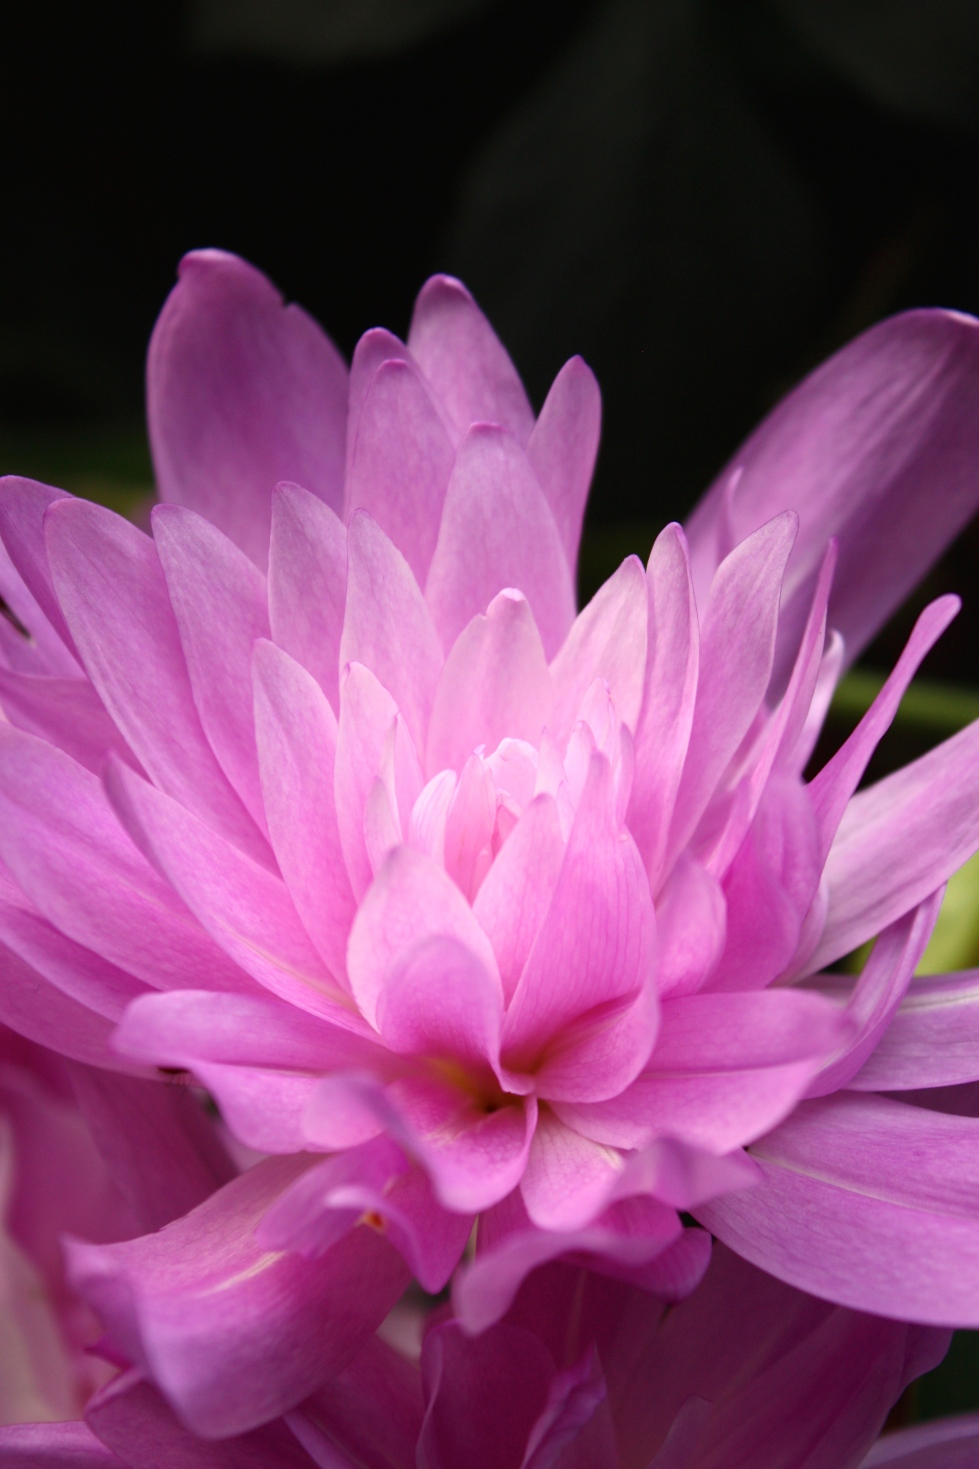 The generously double flowers of Colchicum 'Waterlily' resemble a dahlia more than a waterlily